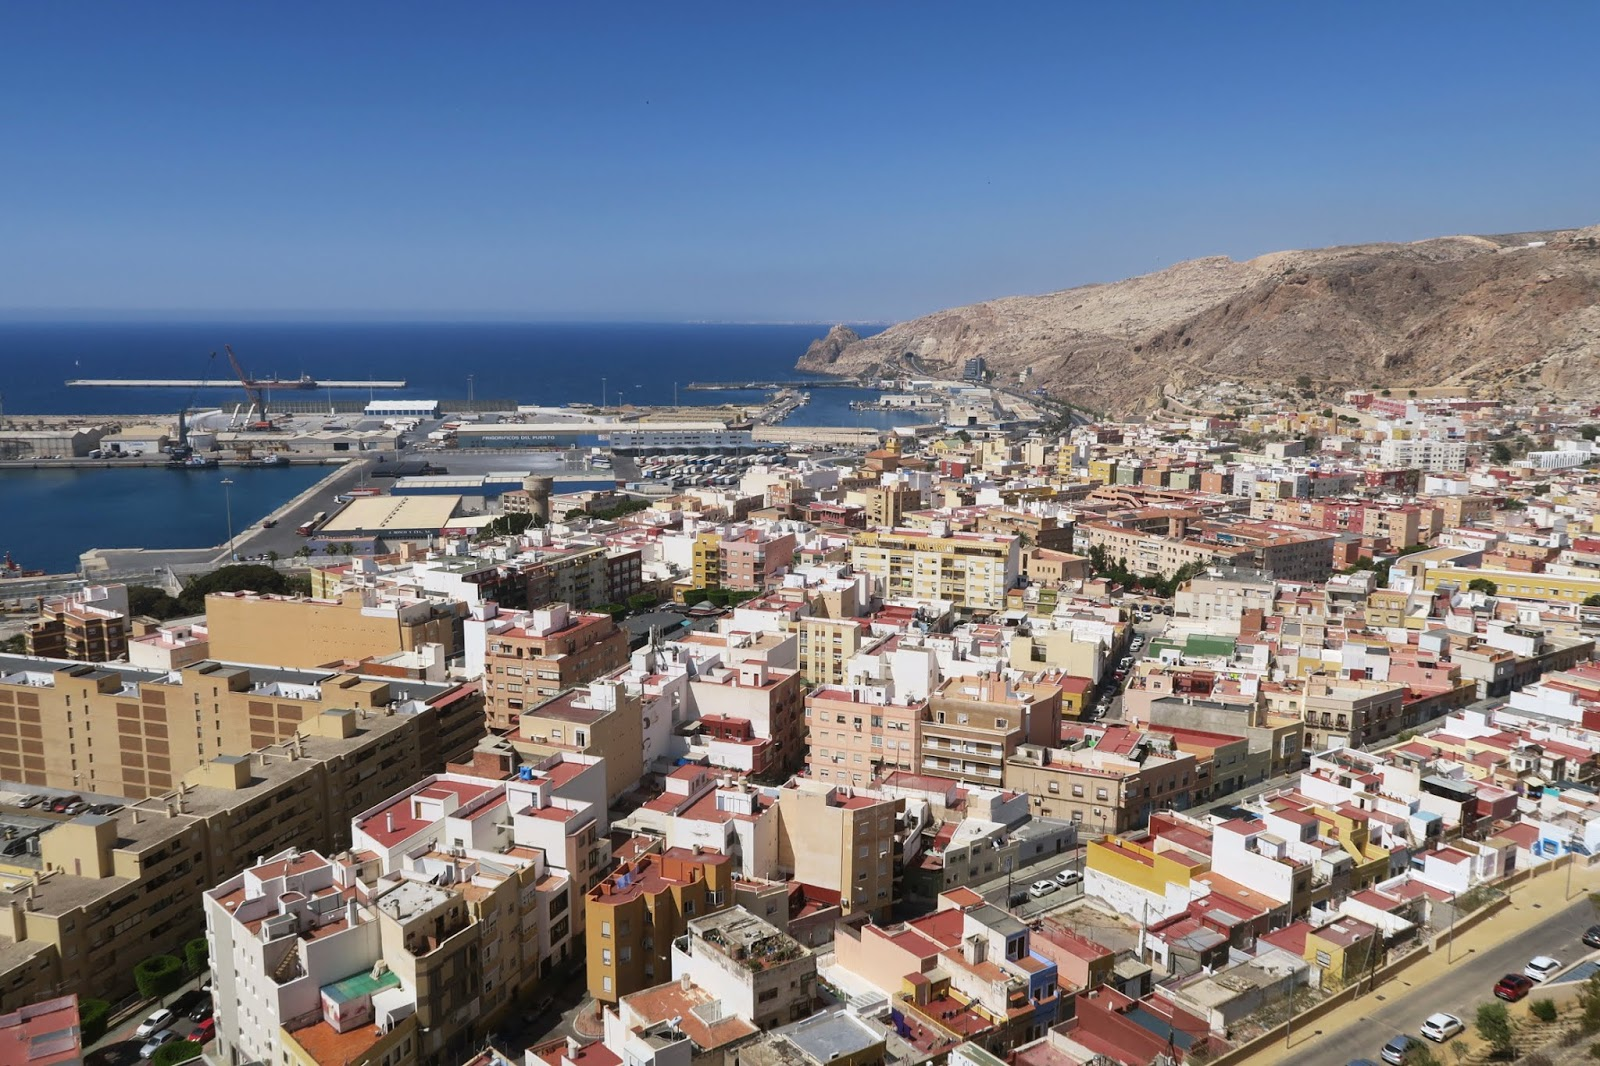 Taken from the top of Almeria Alcazaba looking down over the town